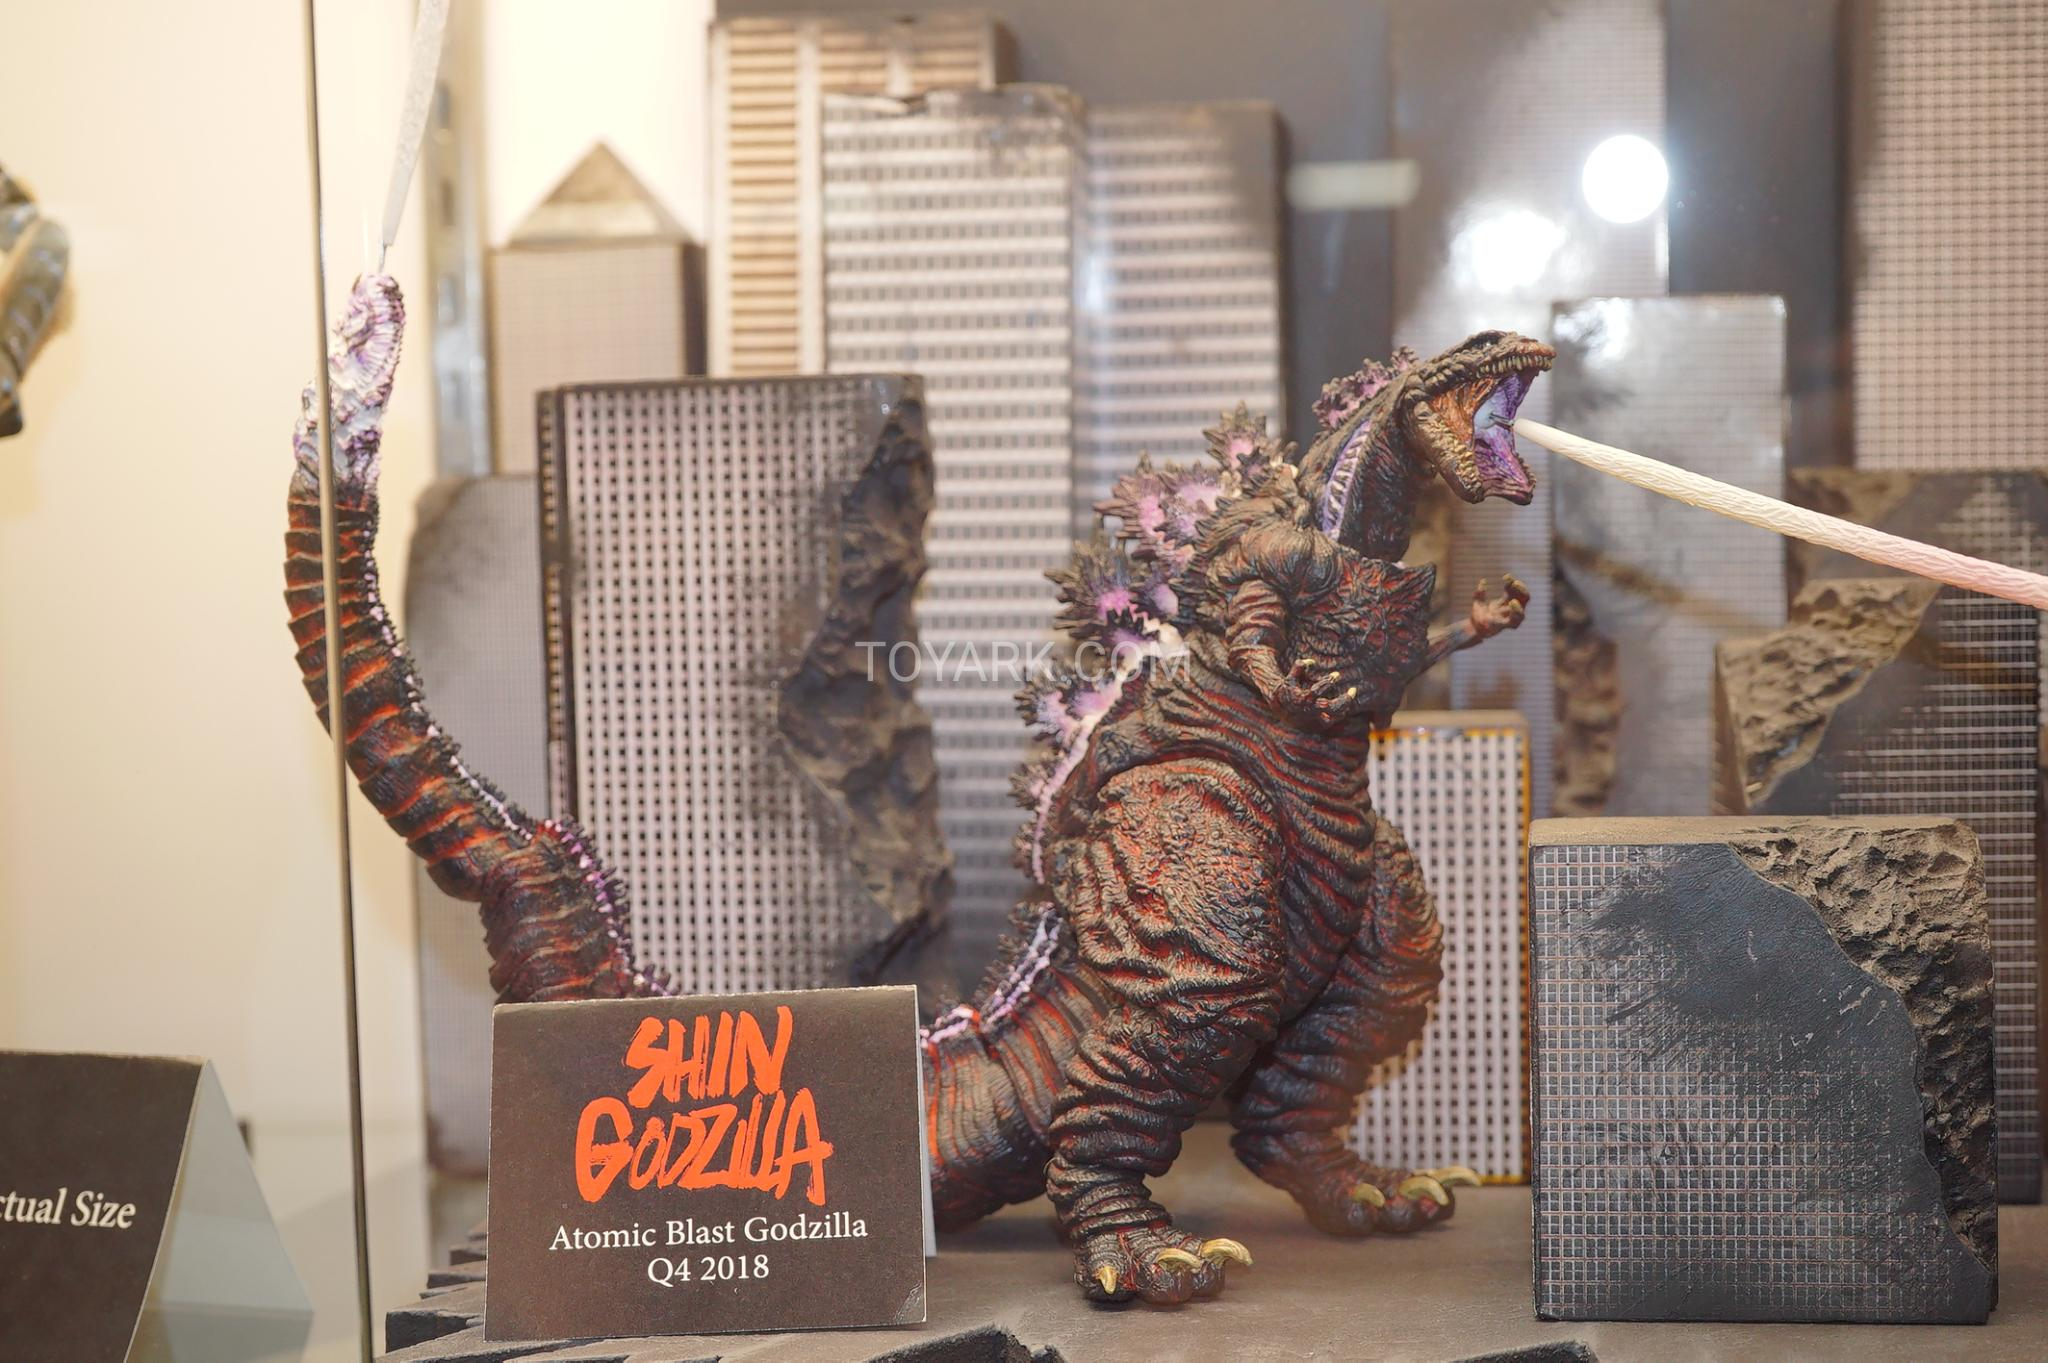 SDCC-2018-NECA-Horror-and-Sci-Fi-056.jpg